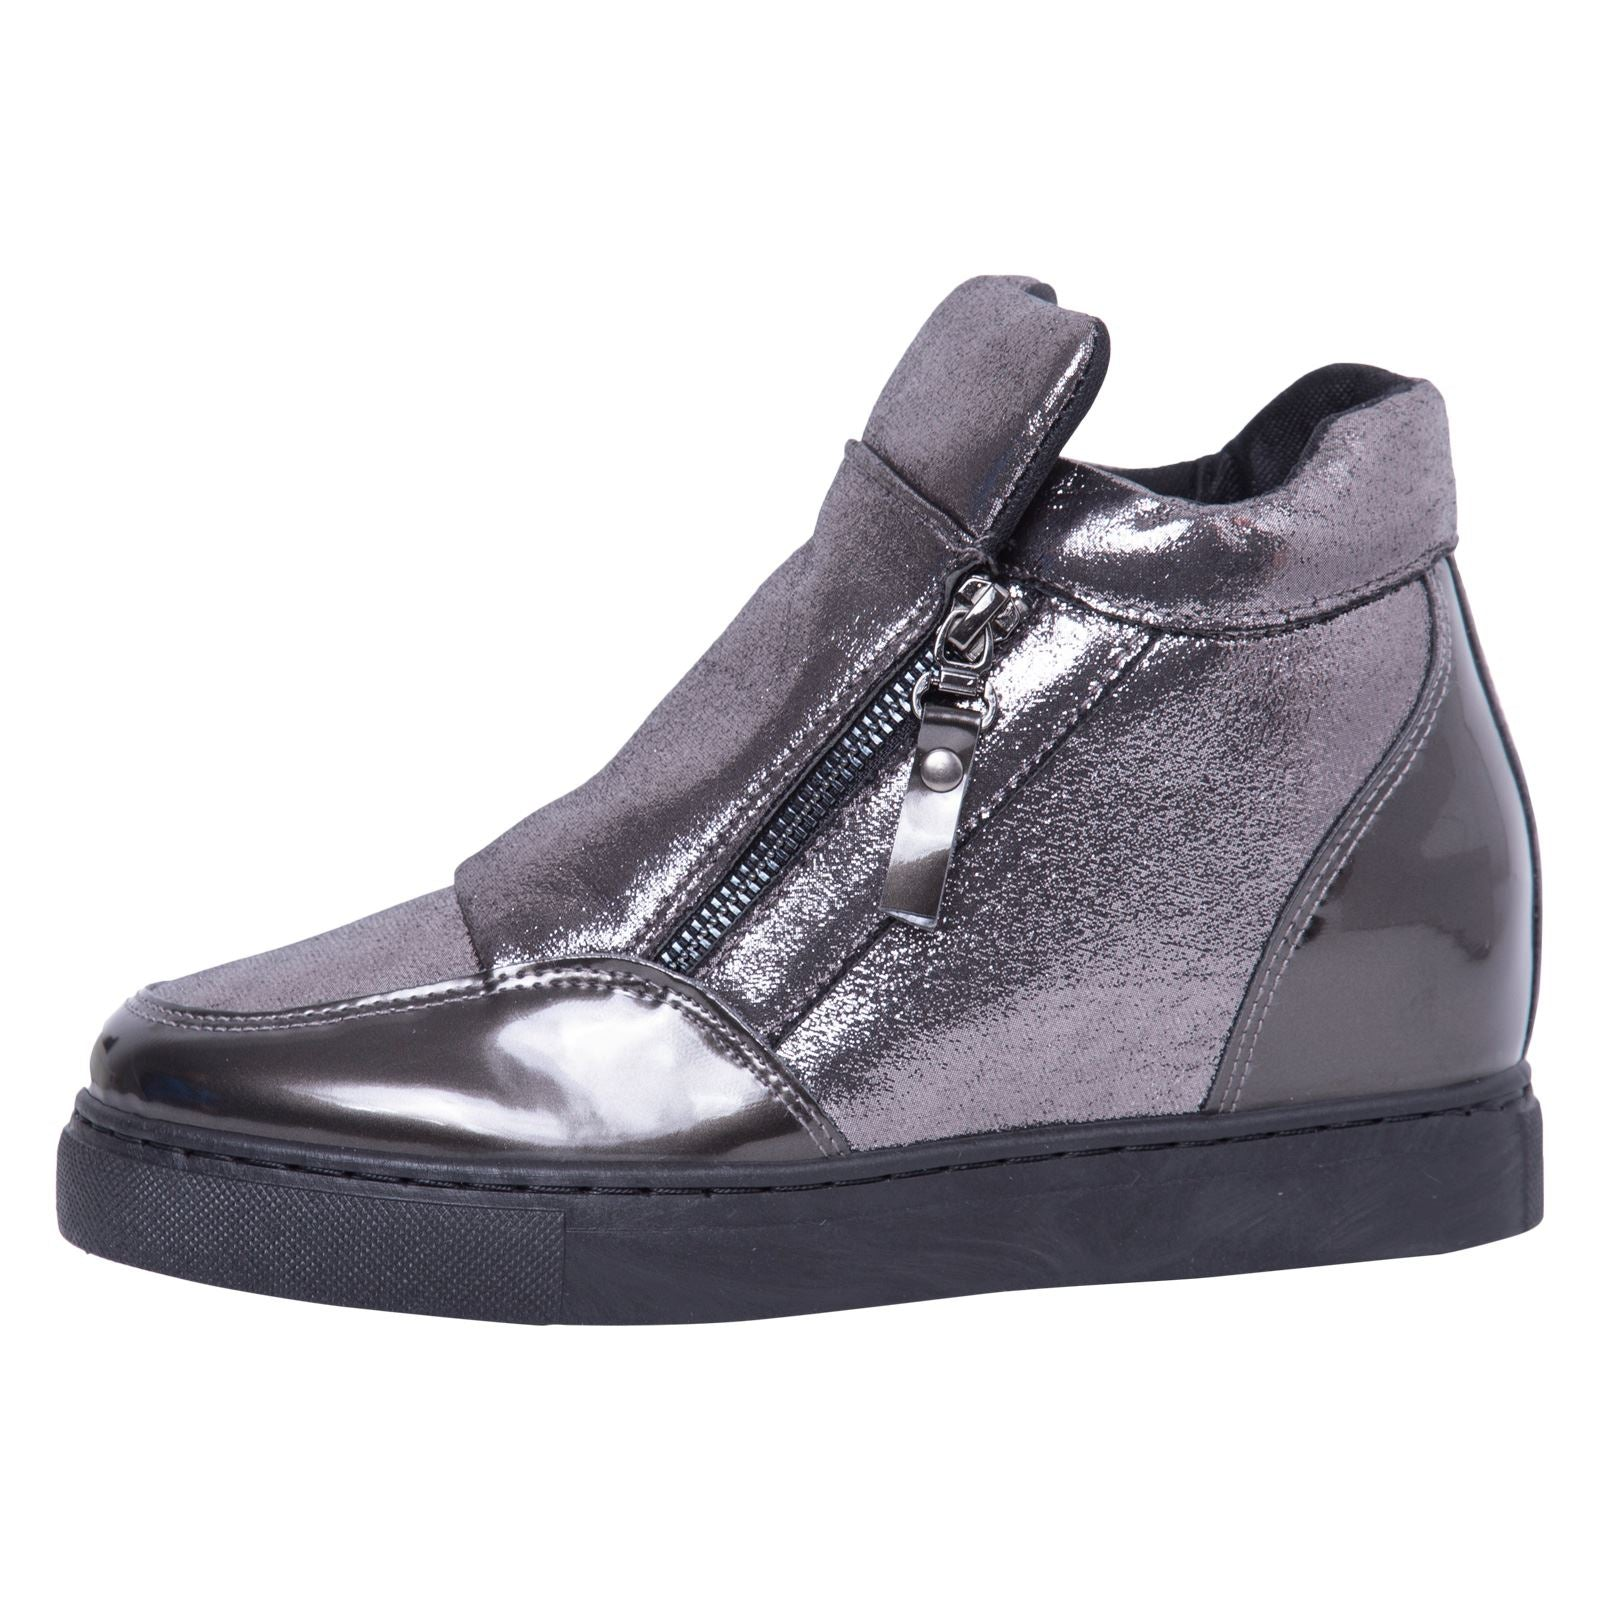 Kacee Stylish Wedge Trainers in Gun With Shimmer